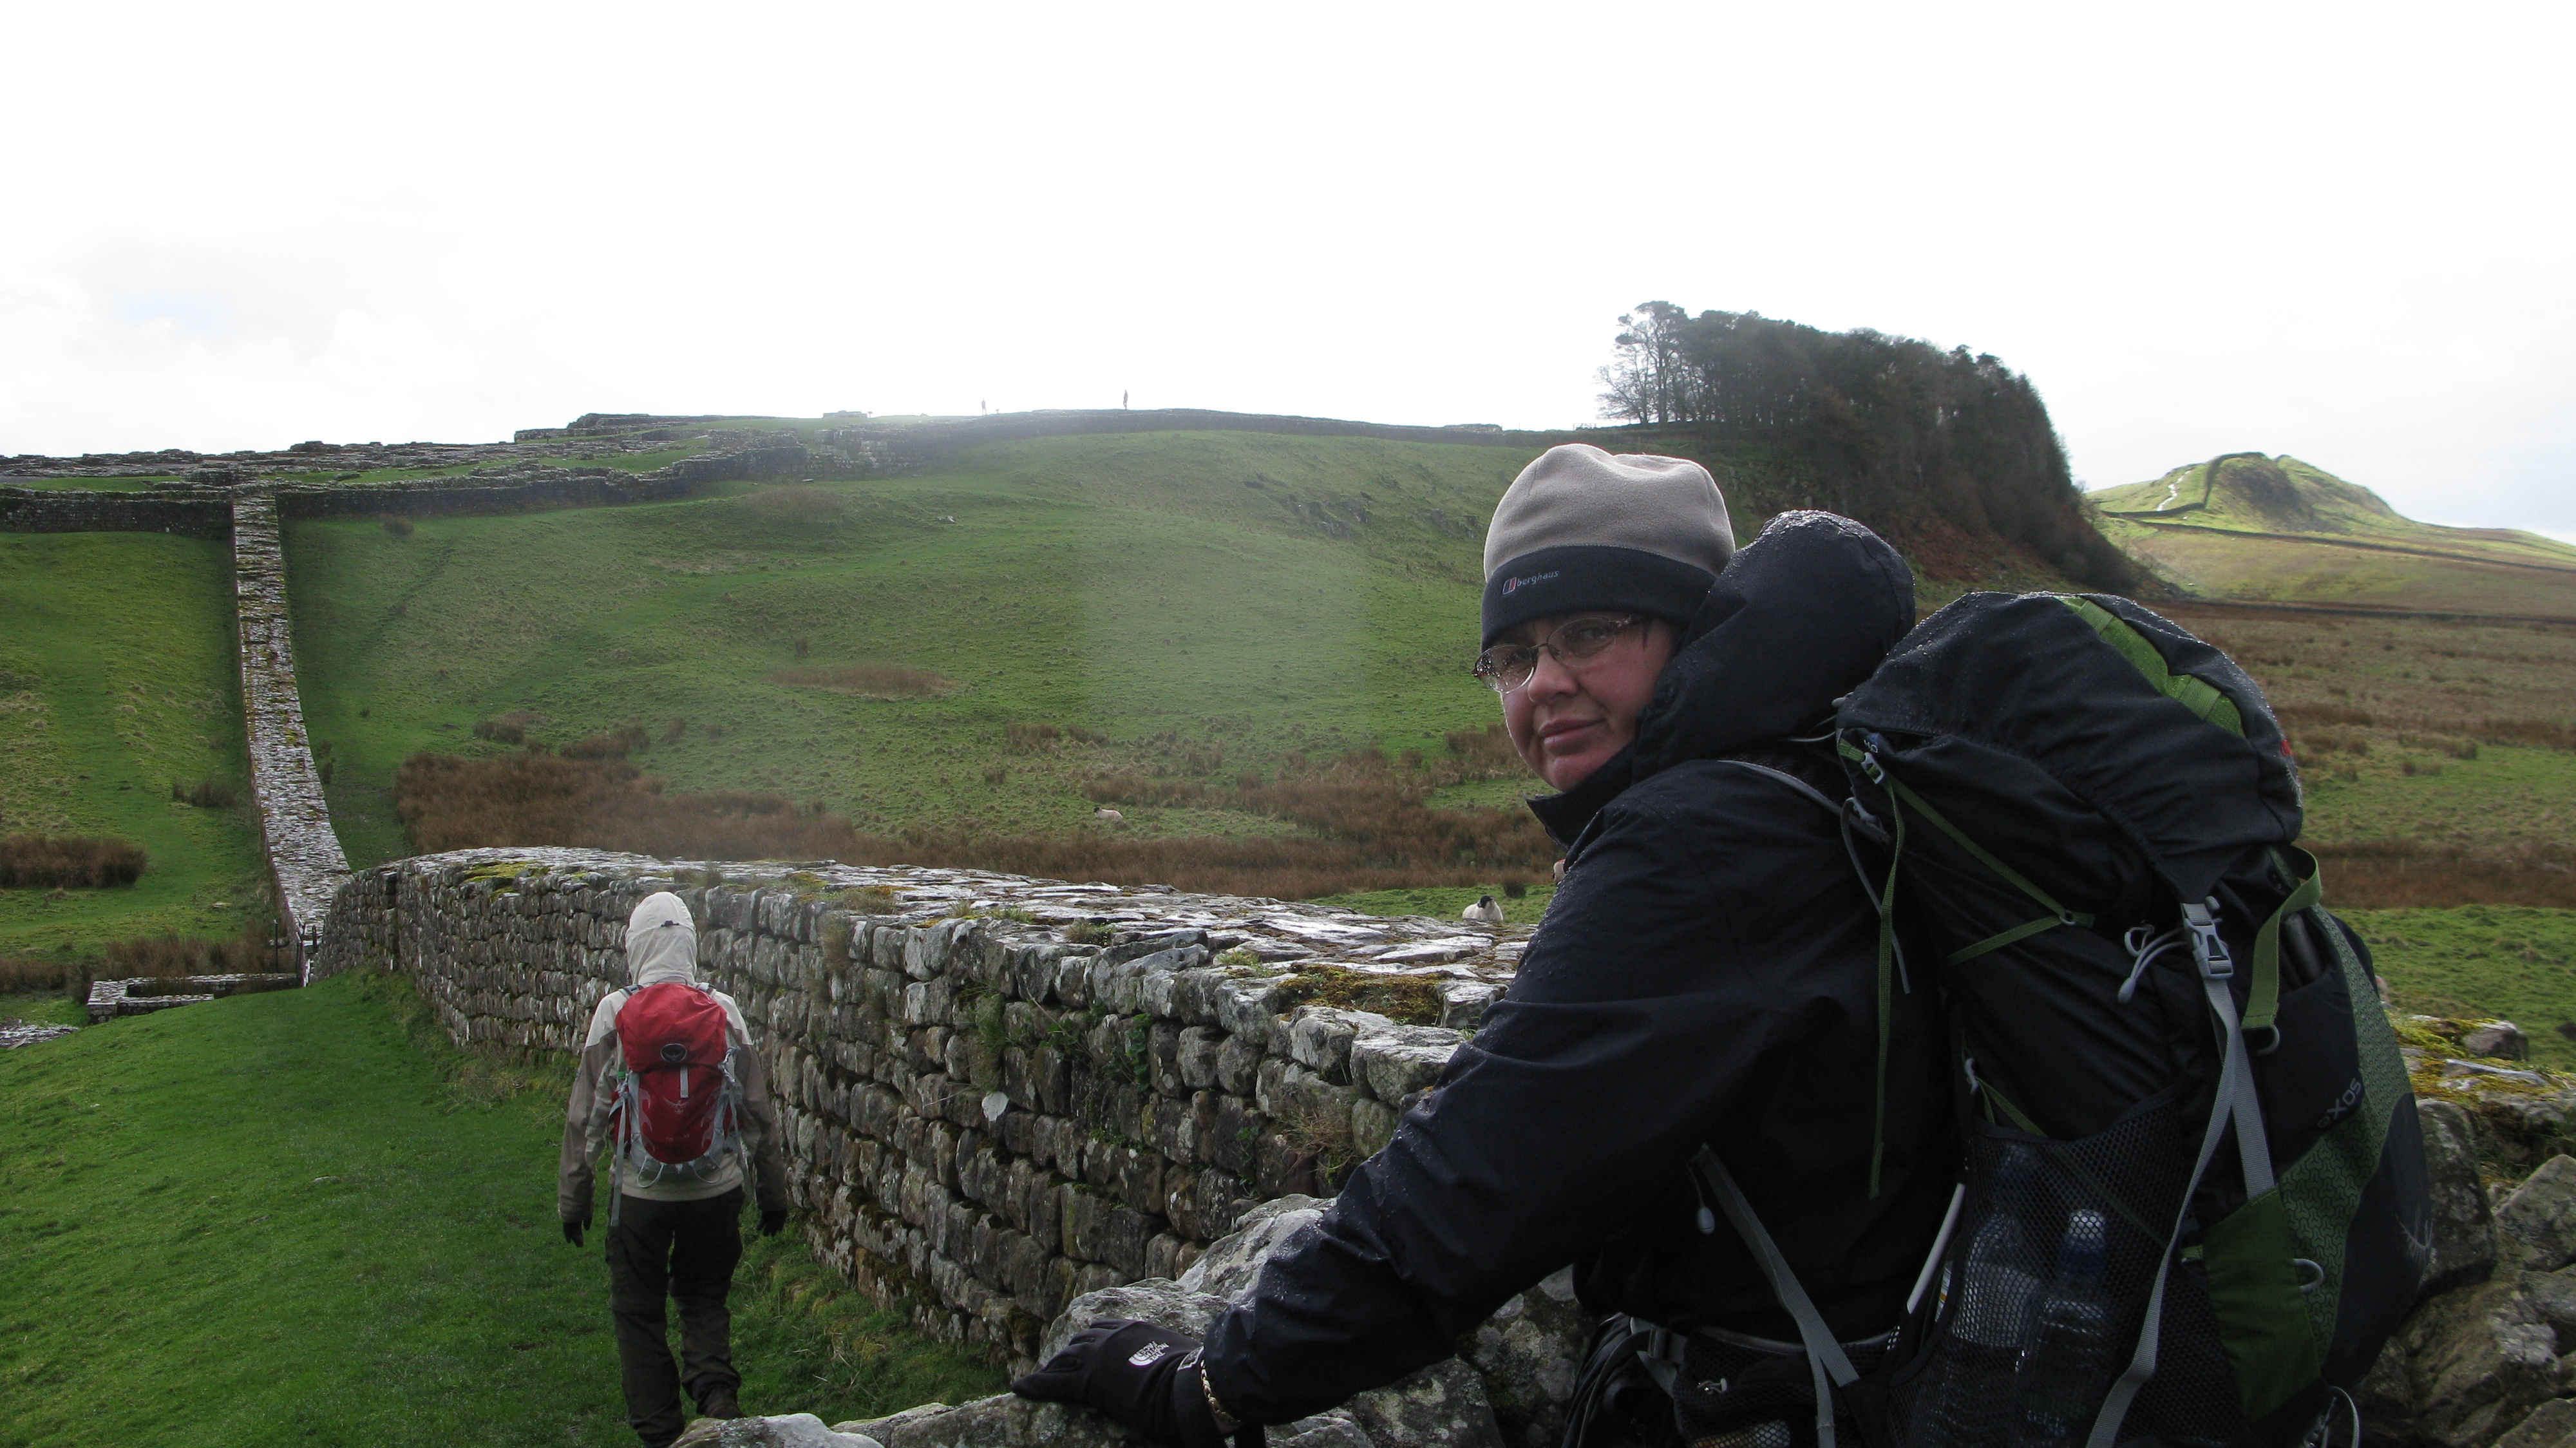 We returned to this part of the country in 2014 to walk the entirity of the Hadrian's Wall Path